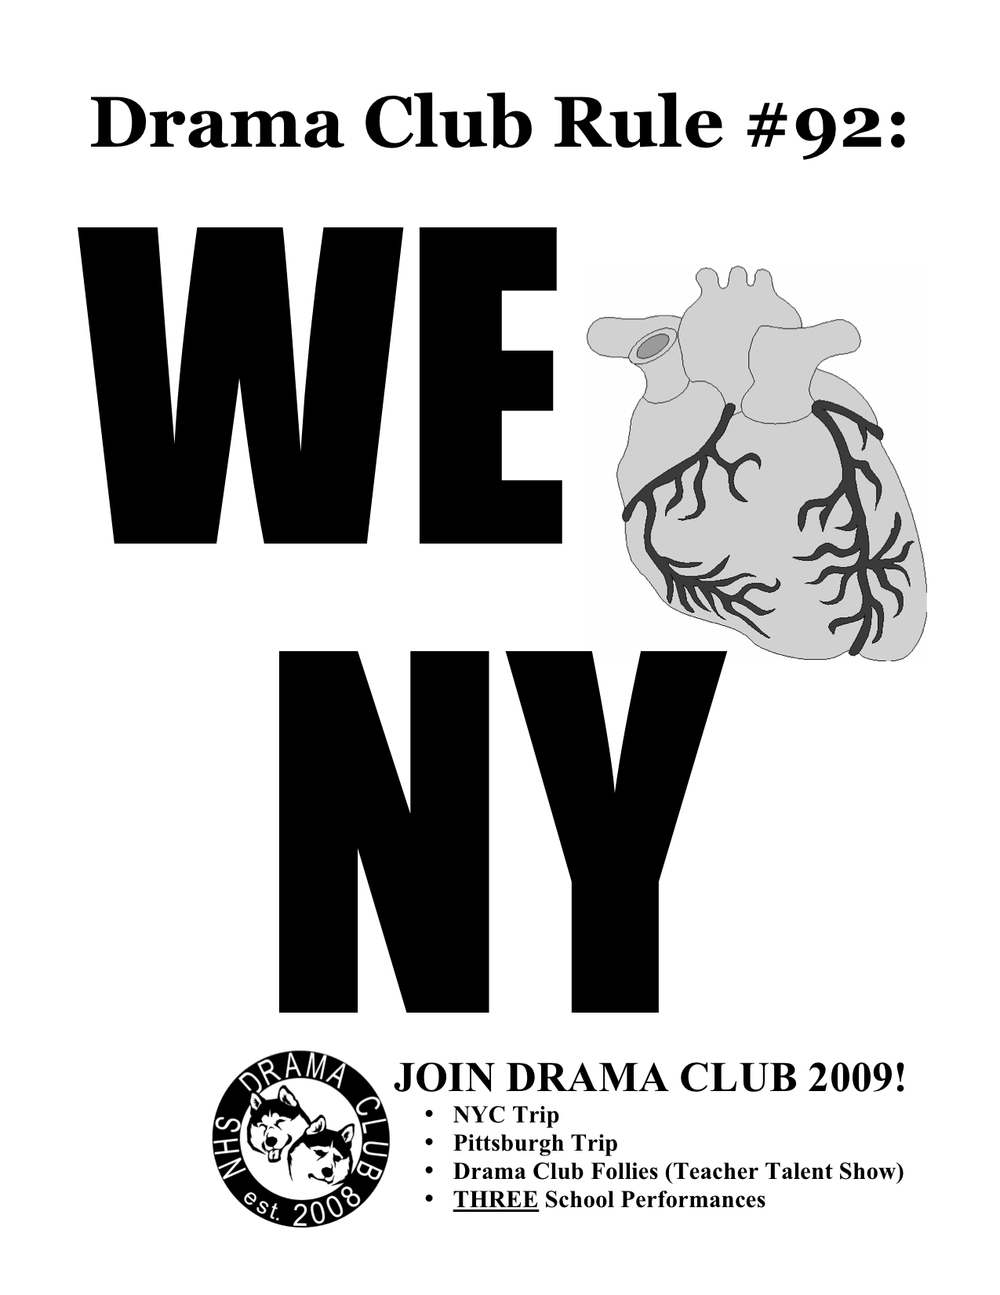 RECRUITMENT POSTER #5 FOR OUR FIRST EVER DRAMA CLUB